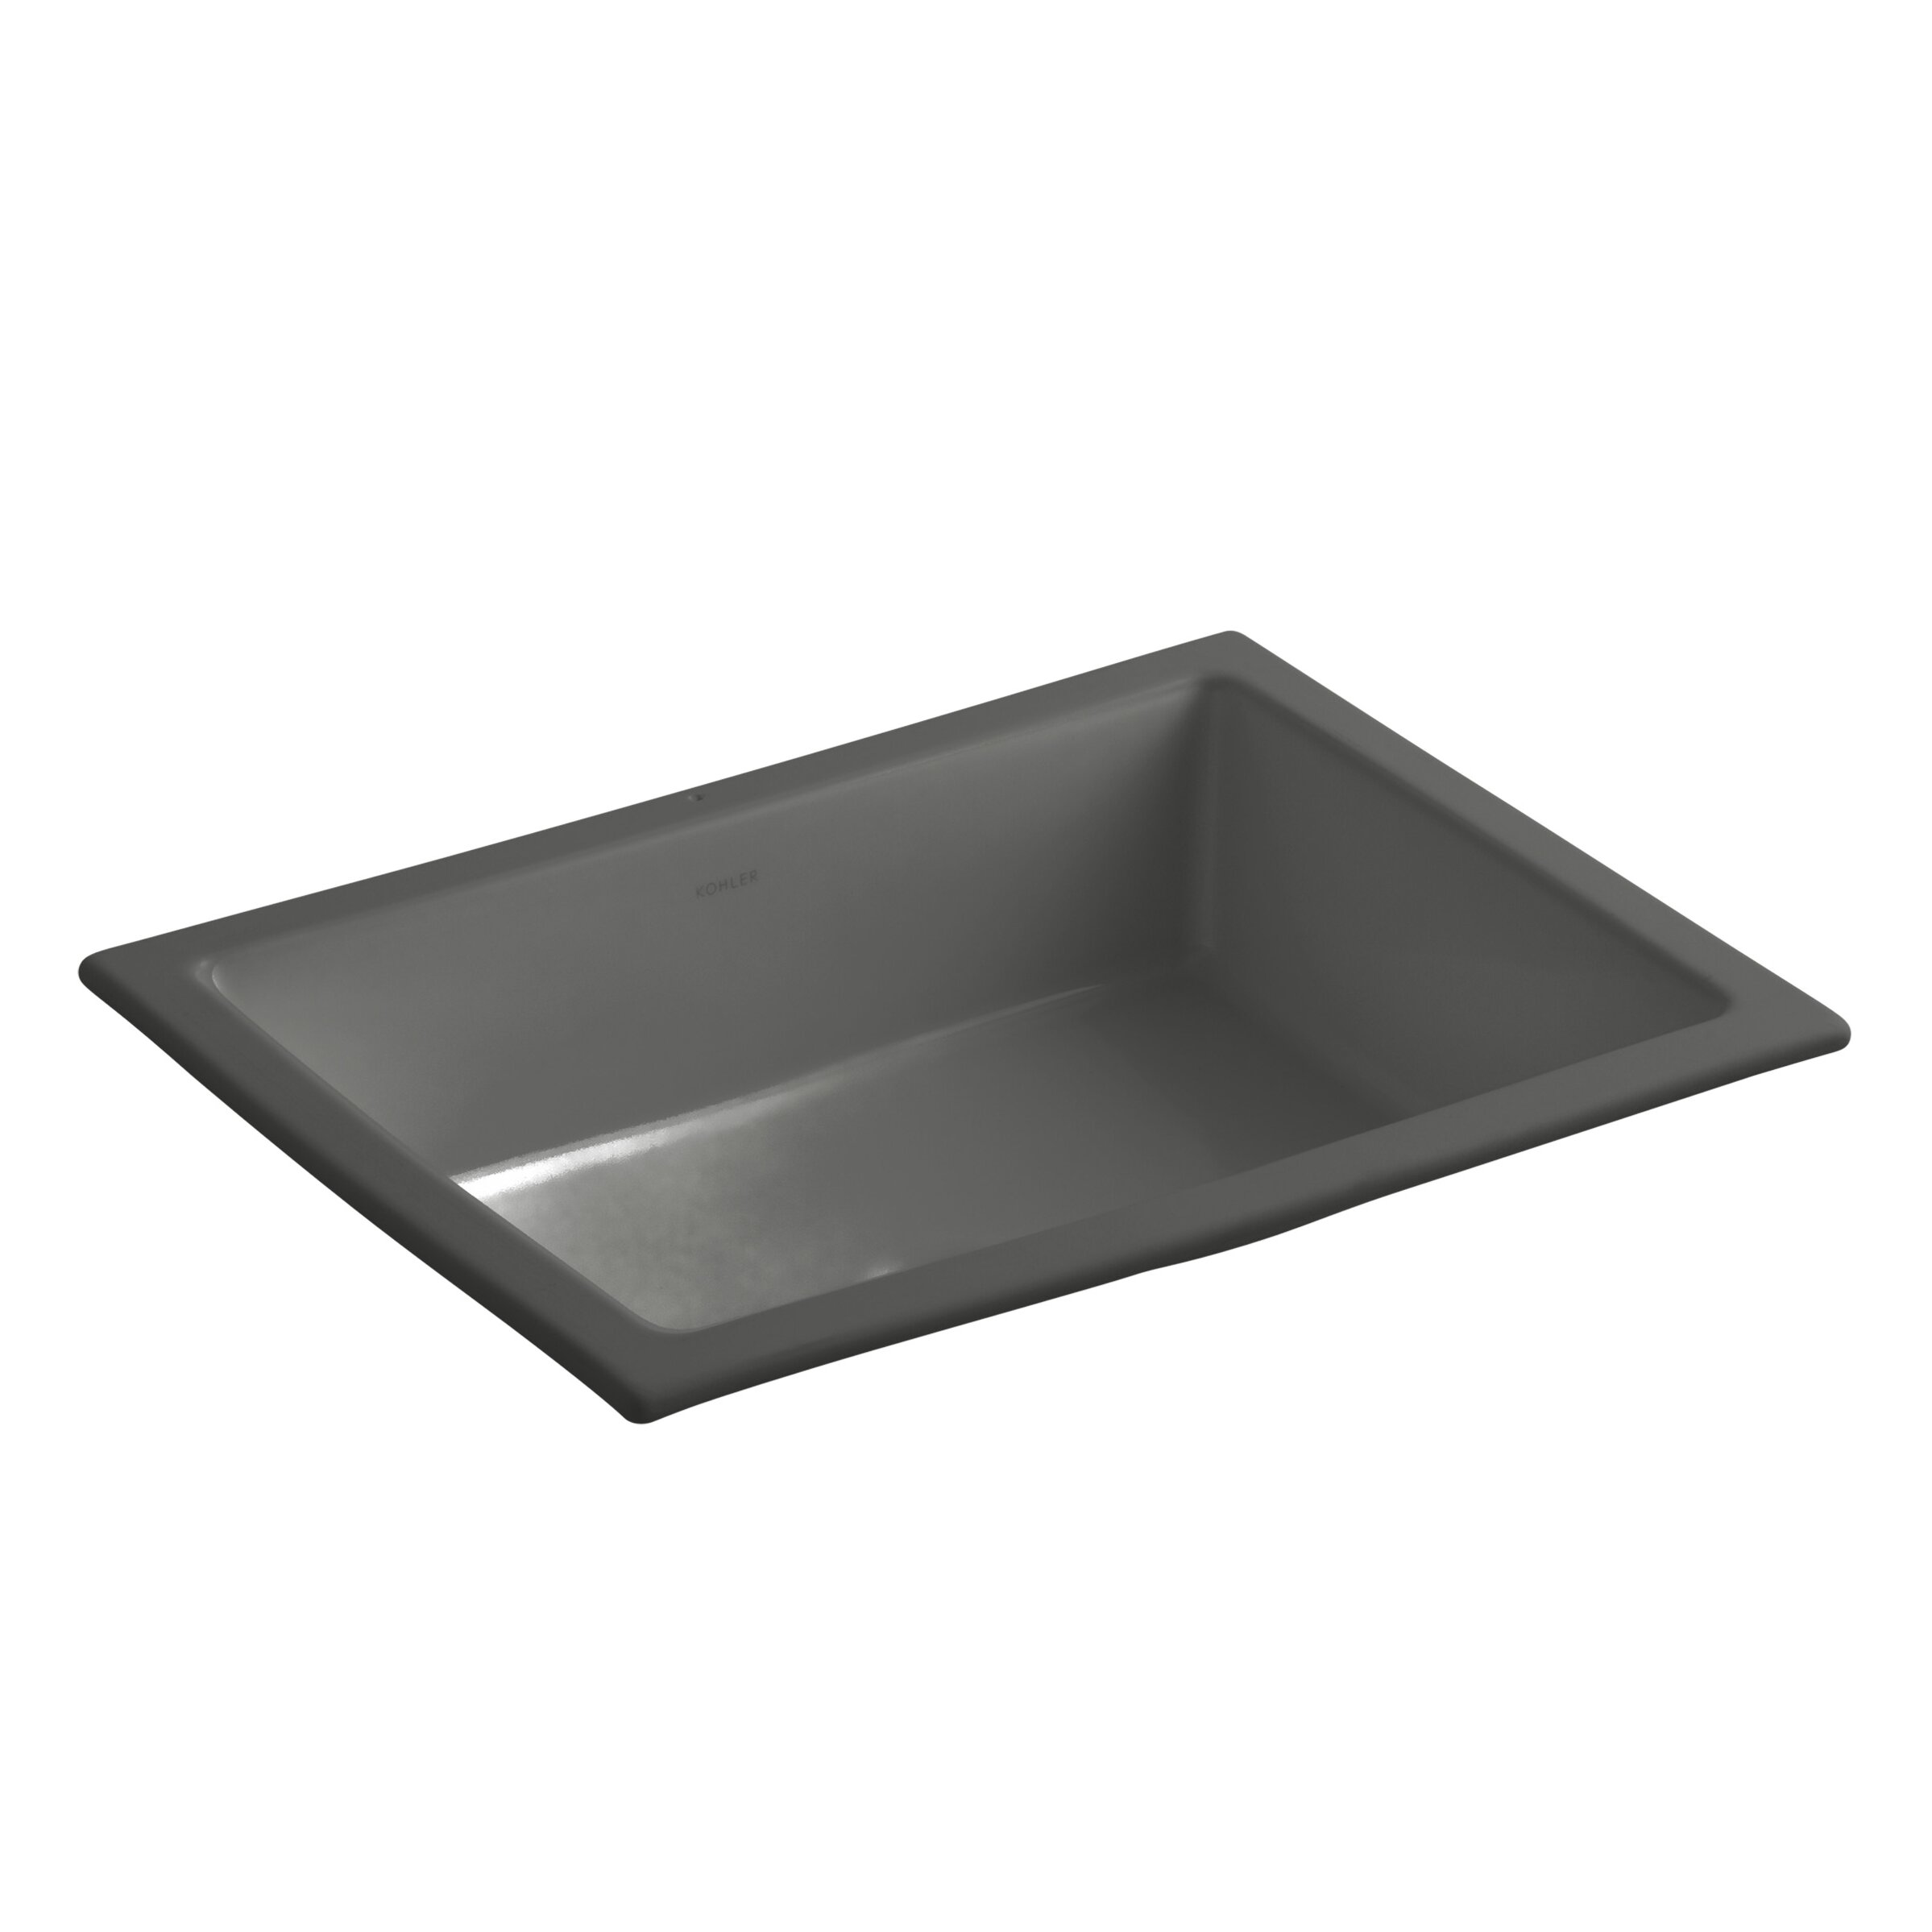 Kohler Rectangular Sink : Kohler Verticyl Rectangular Undermount Bathroom Sink with Overflow ...